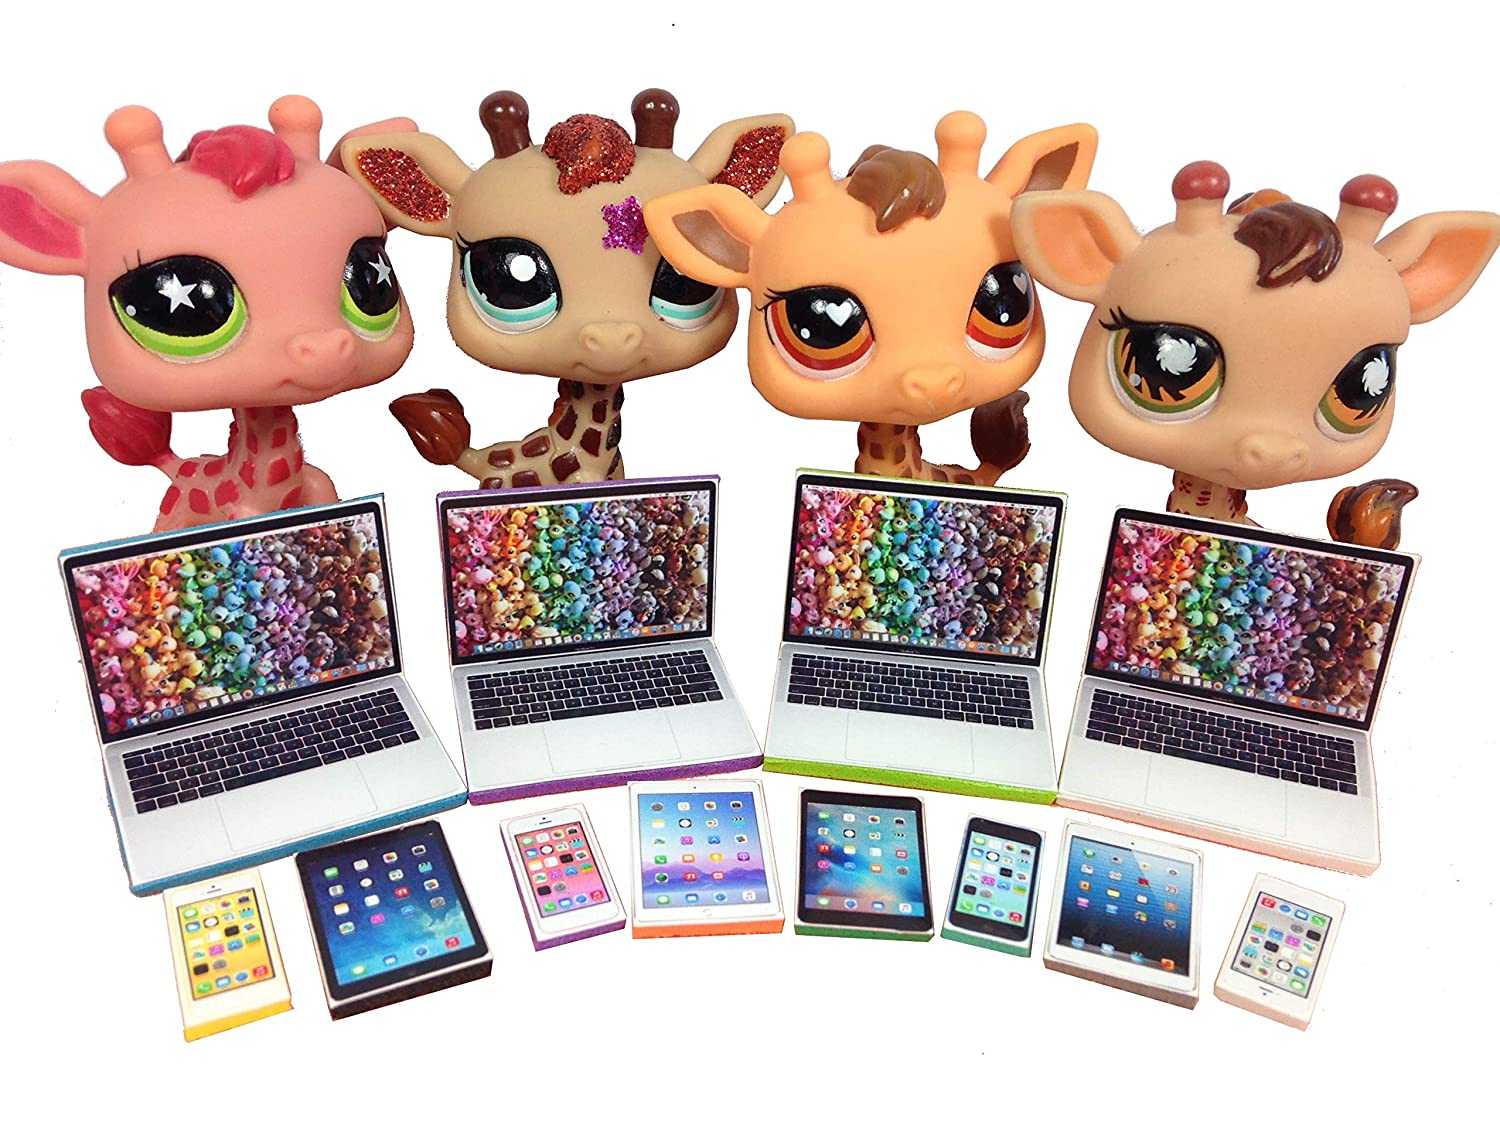 LPS Littlest Pet Shop 12 Accessories Lot Set 4 Laptops, 4 Tablets, 4 Phones PET NOT INCLUDED